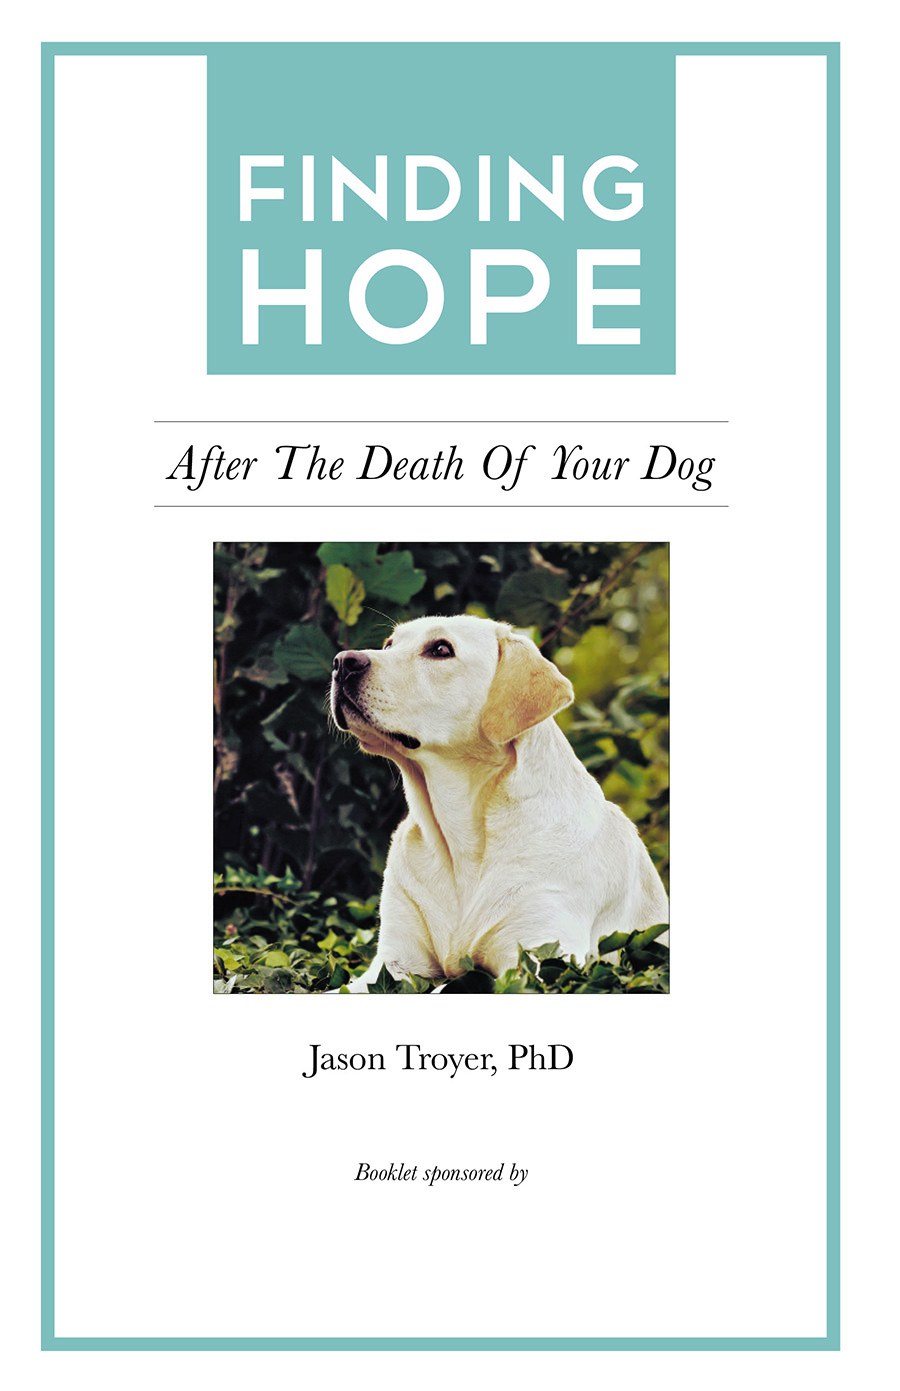 So I decided to write a booklet .... - ... for others who were grieving the death of their dog: Finding Hope after the Loss of a Dog. The feedback on my booklet was so positive that I went on to write 12 booklets on various types of loss (and you can download all my booklets for free). Finally, I was using my personal and professional expertise to actually help others.